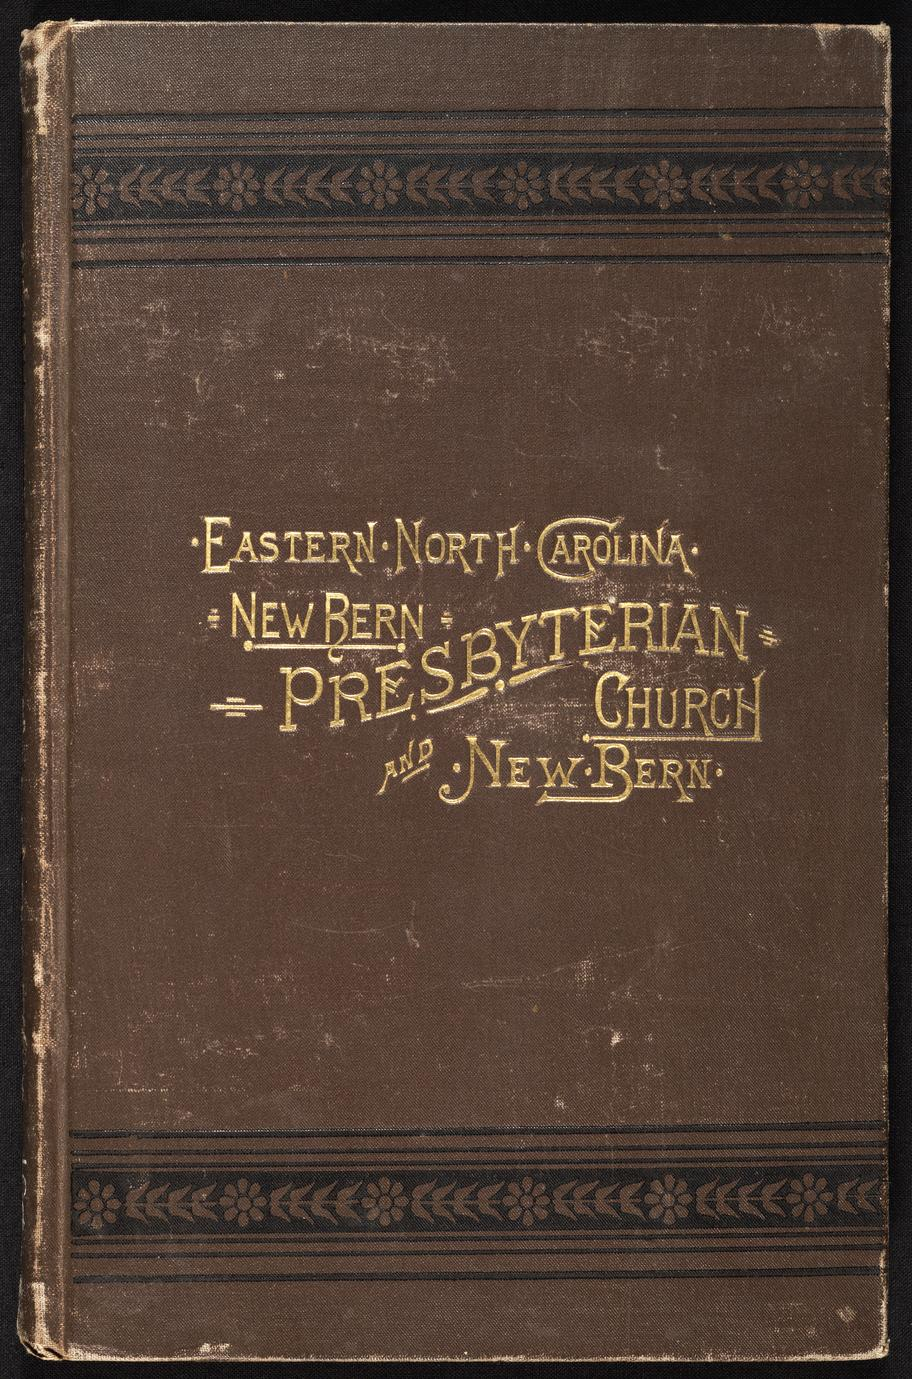 History of the Presbyterian Church in New Bern, N.C. : with a resumé of early ecclesiastical affairs in eastern North Carolina and a sketch of the early days of New Bern, N.C. (1 of 3)